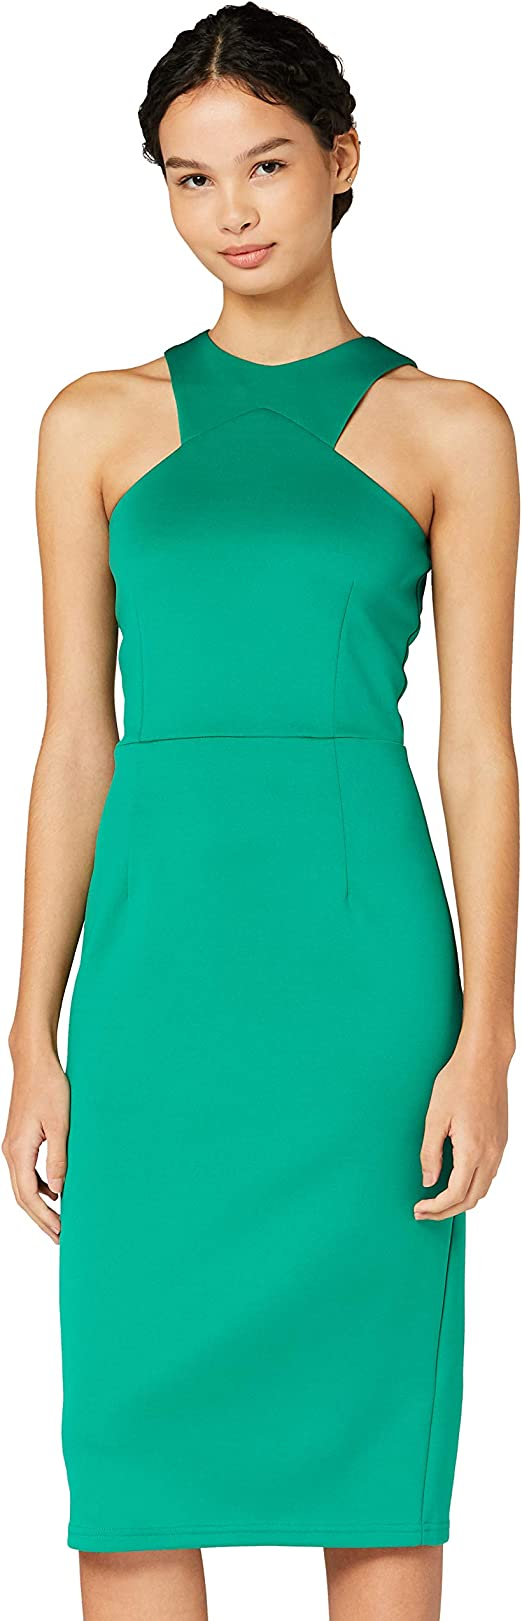 TALLA 40 (Talla del Fabricante: Medium). Marca Amazon - TRUTH & FABLE Vestido Mujer Asimétrico Verde (Green) 40 (Talla del fabricante: Medium)